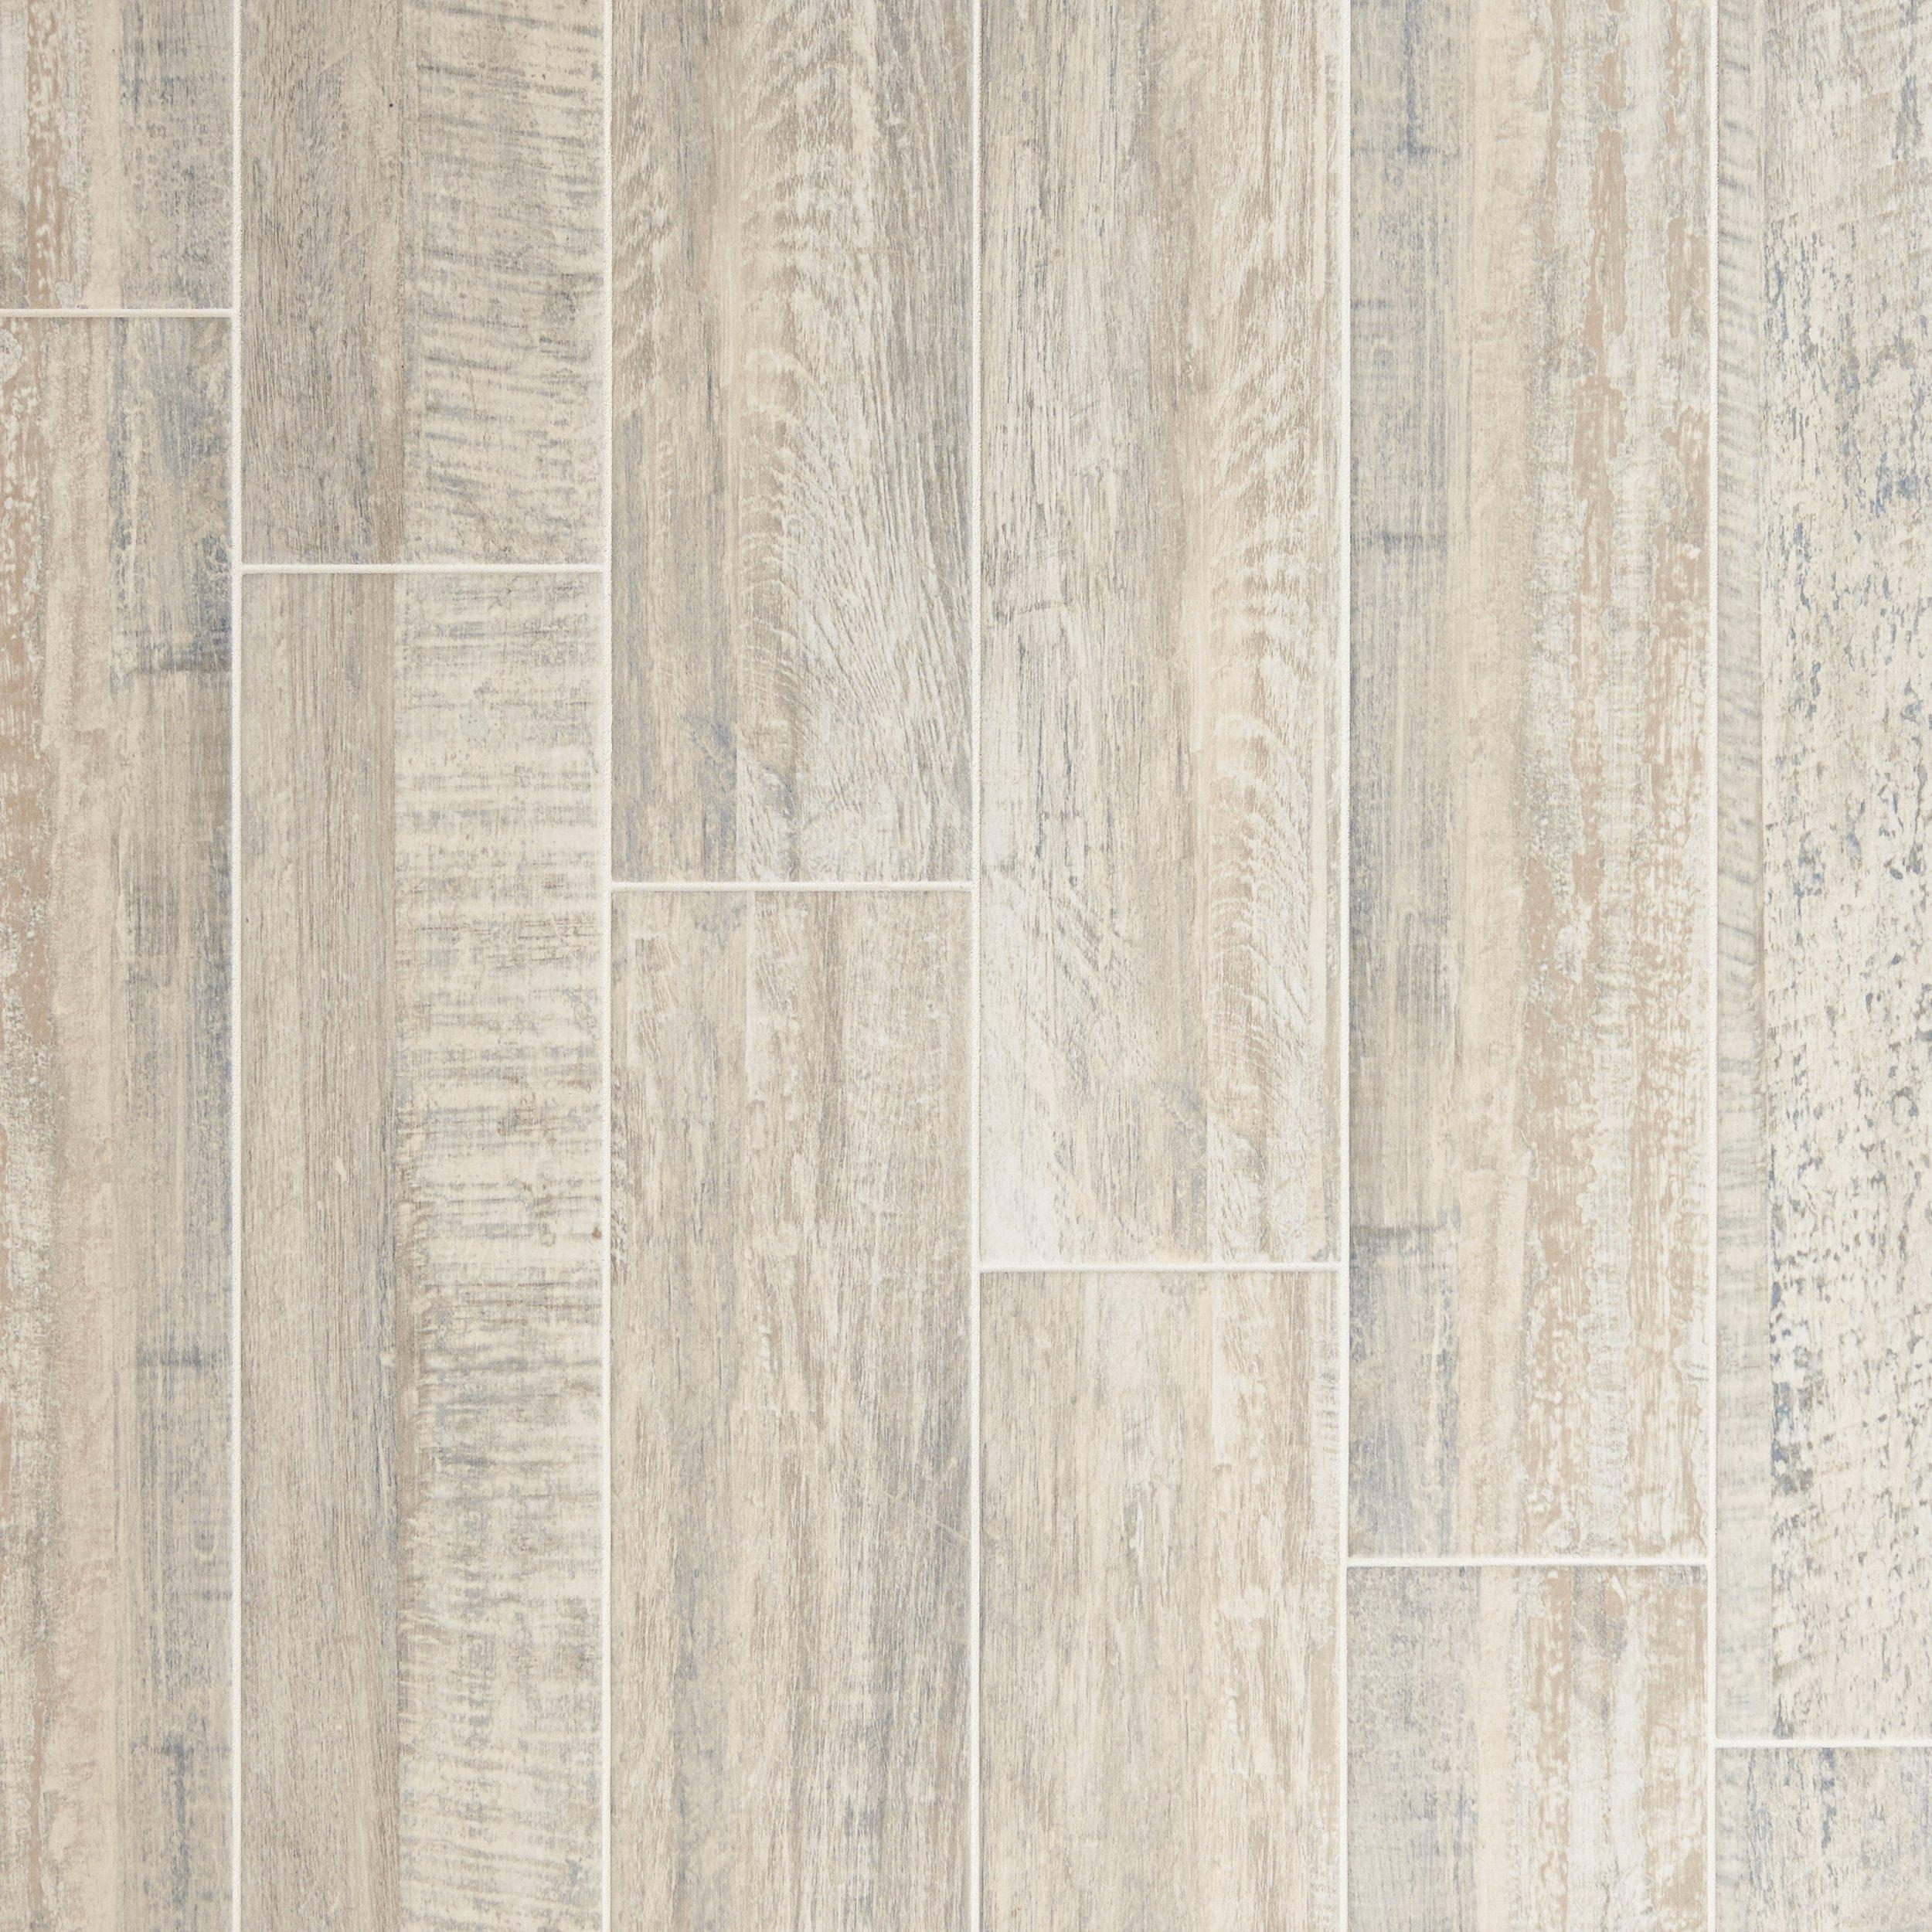 Exceptionnel Pier White Wood Plank Porcelain Tile